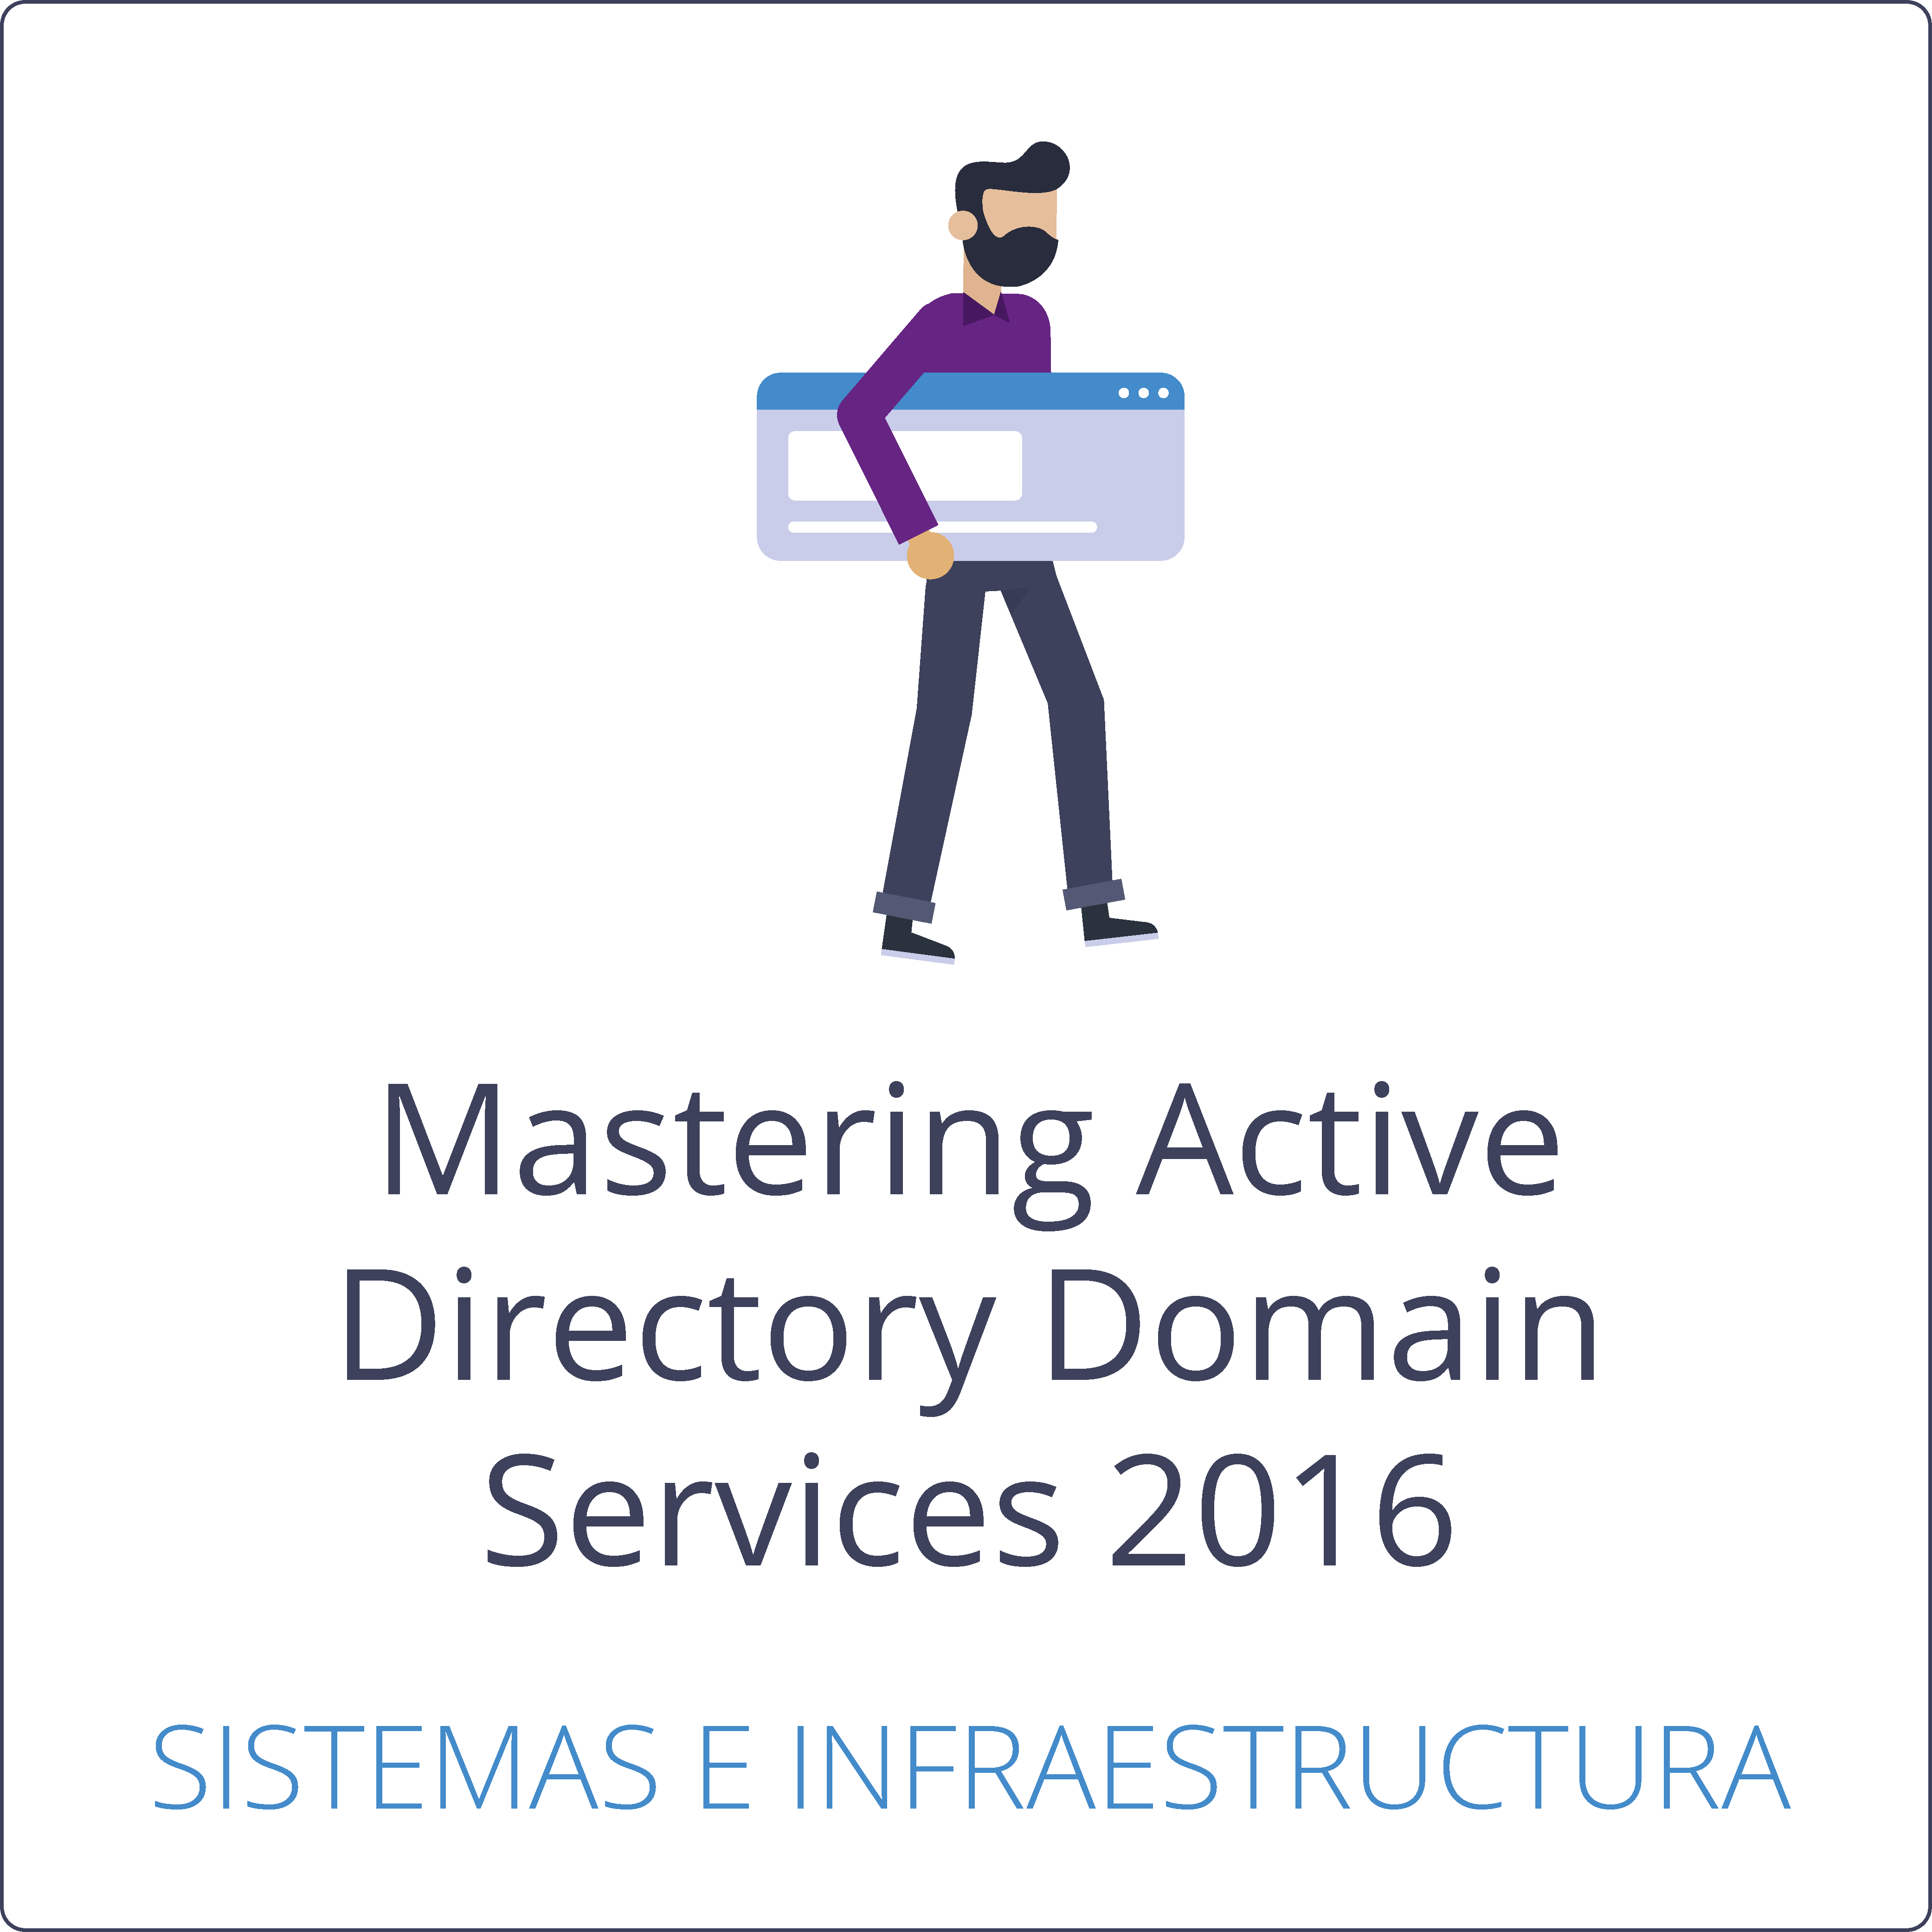 Mastering Active Directory Domain Services 2016